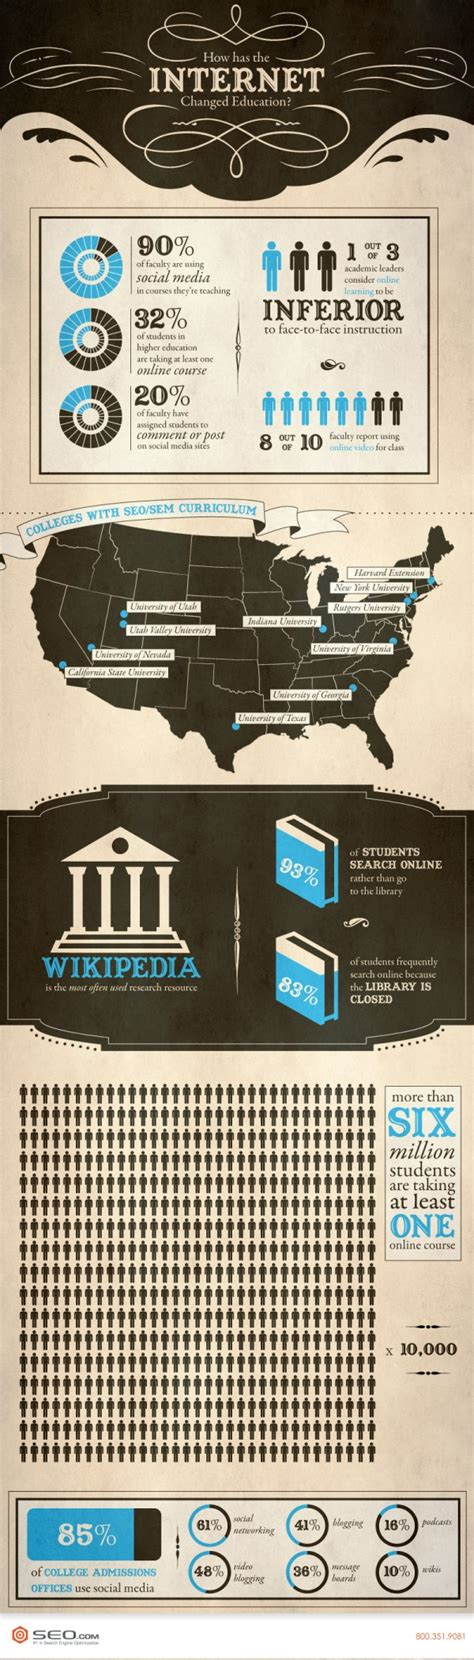 Seo Technology Wiki by Study How Has Changed Education From